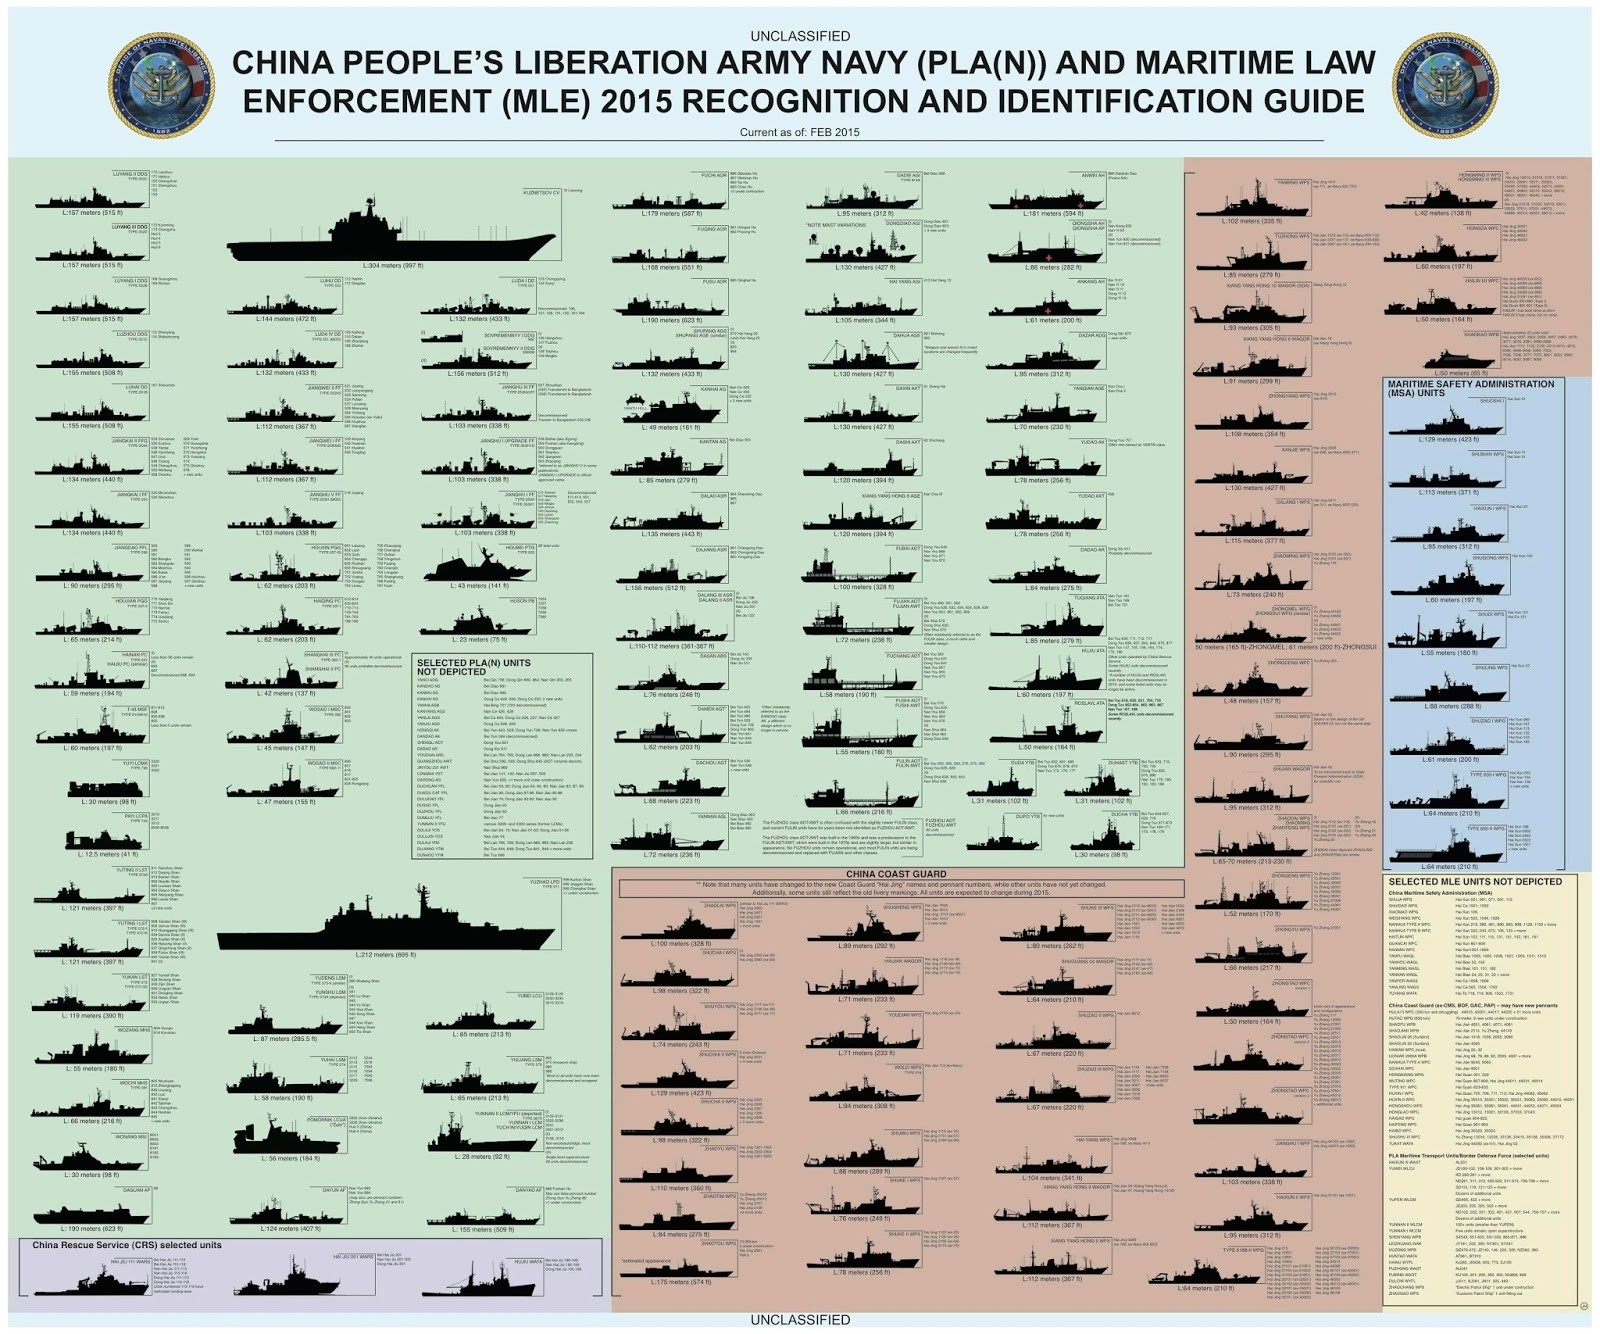 5 Tactics China Uses to Asserts Its Power in the South China Sea